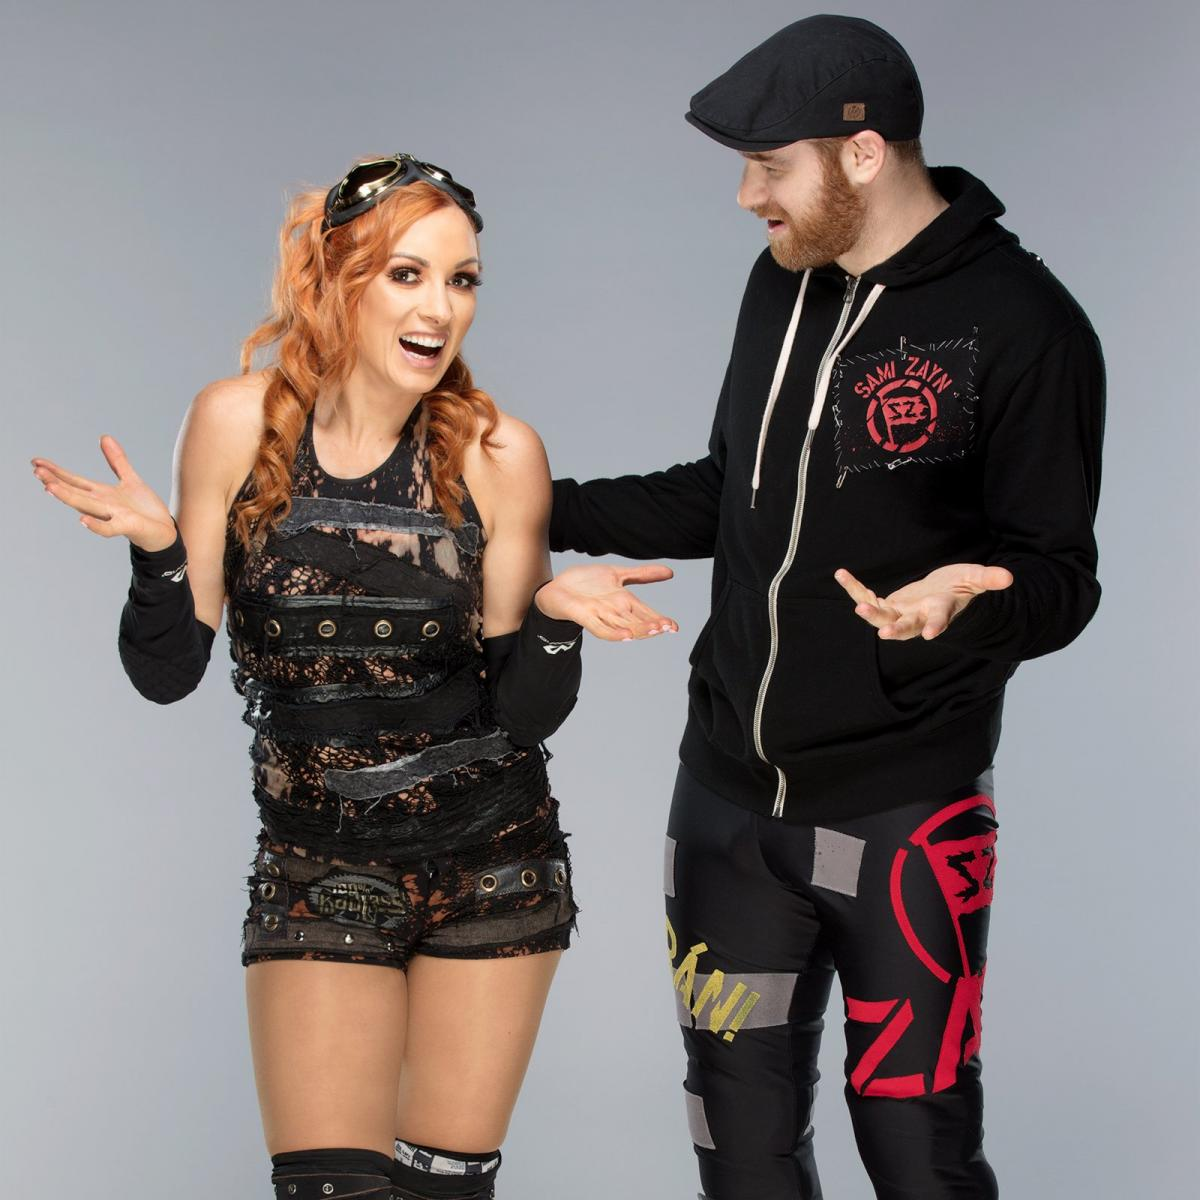 Wwe Images Sami Zayn And Becky Lynch Hd Fond Décran And Background